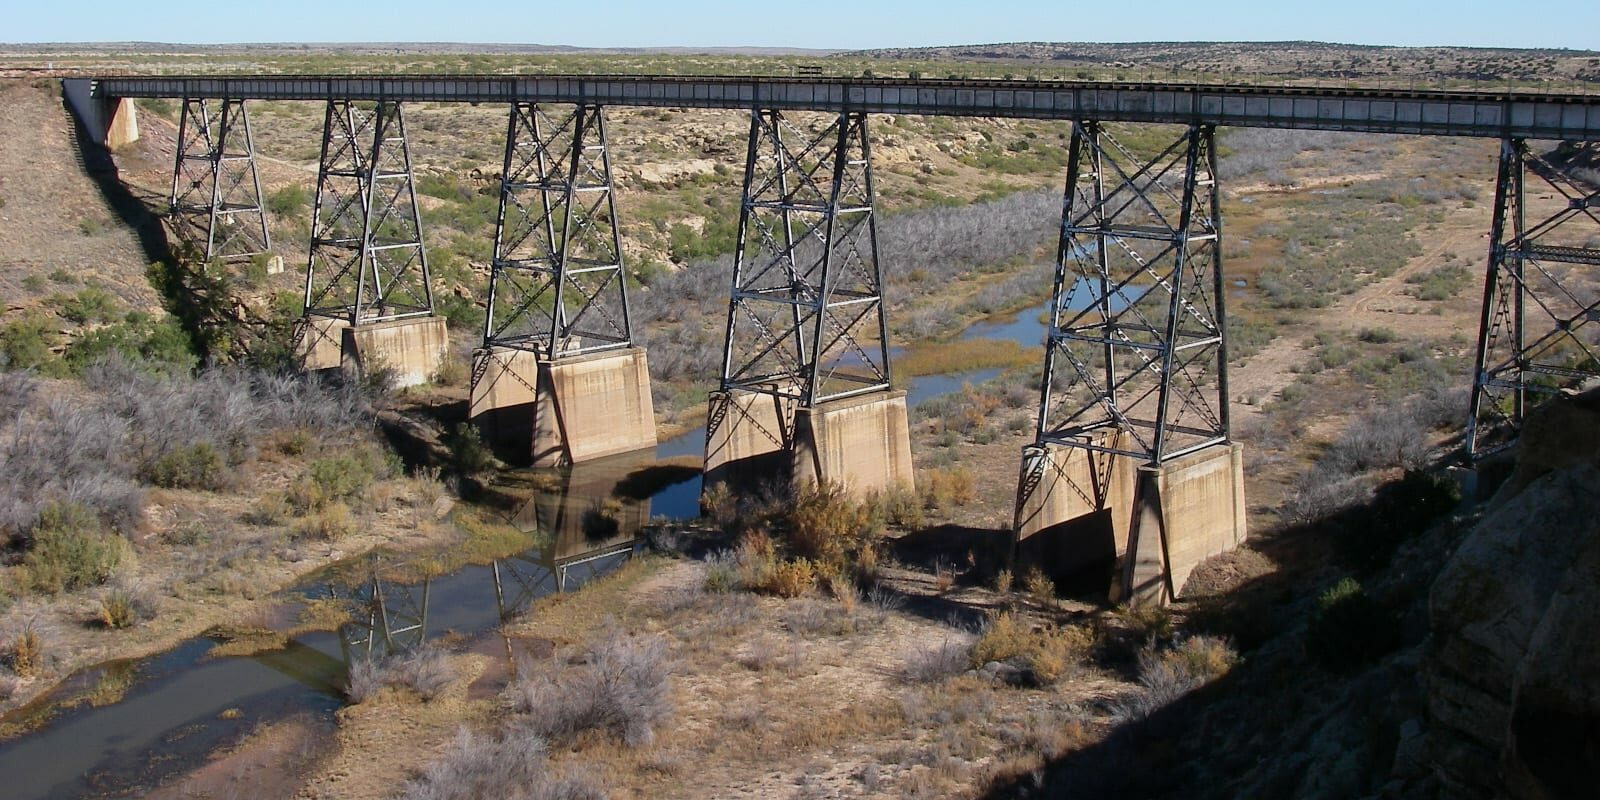 Image of the Canadian River in New Mexico with a railroad bridge crossing over